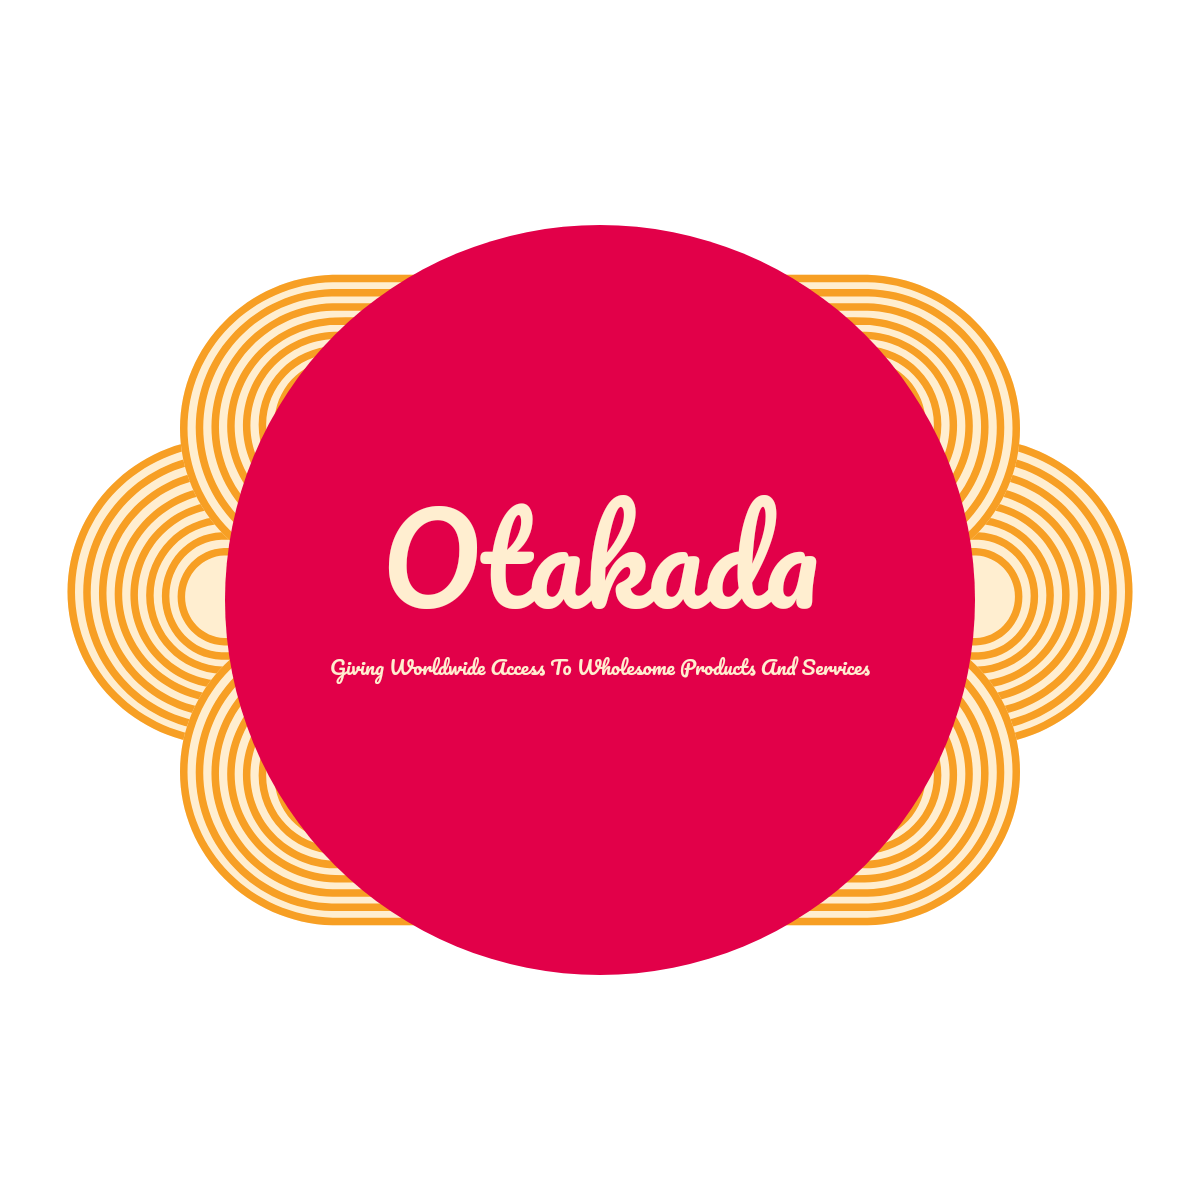 Otakada.org Shop For Faith-based and Faith Inspired Wholesome Products and Services